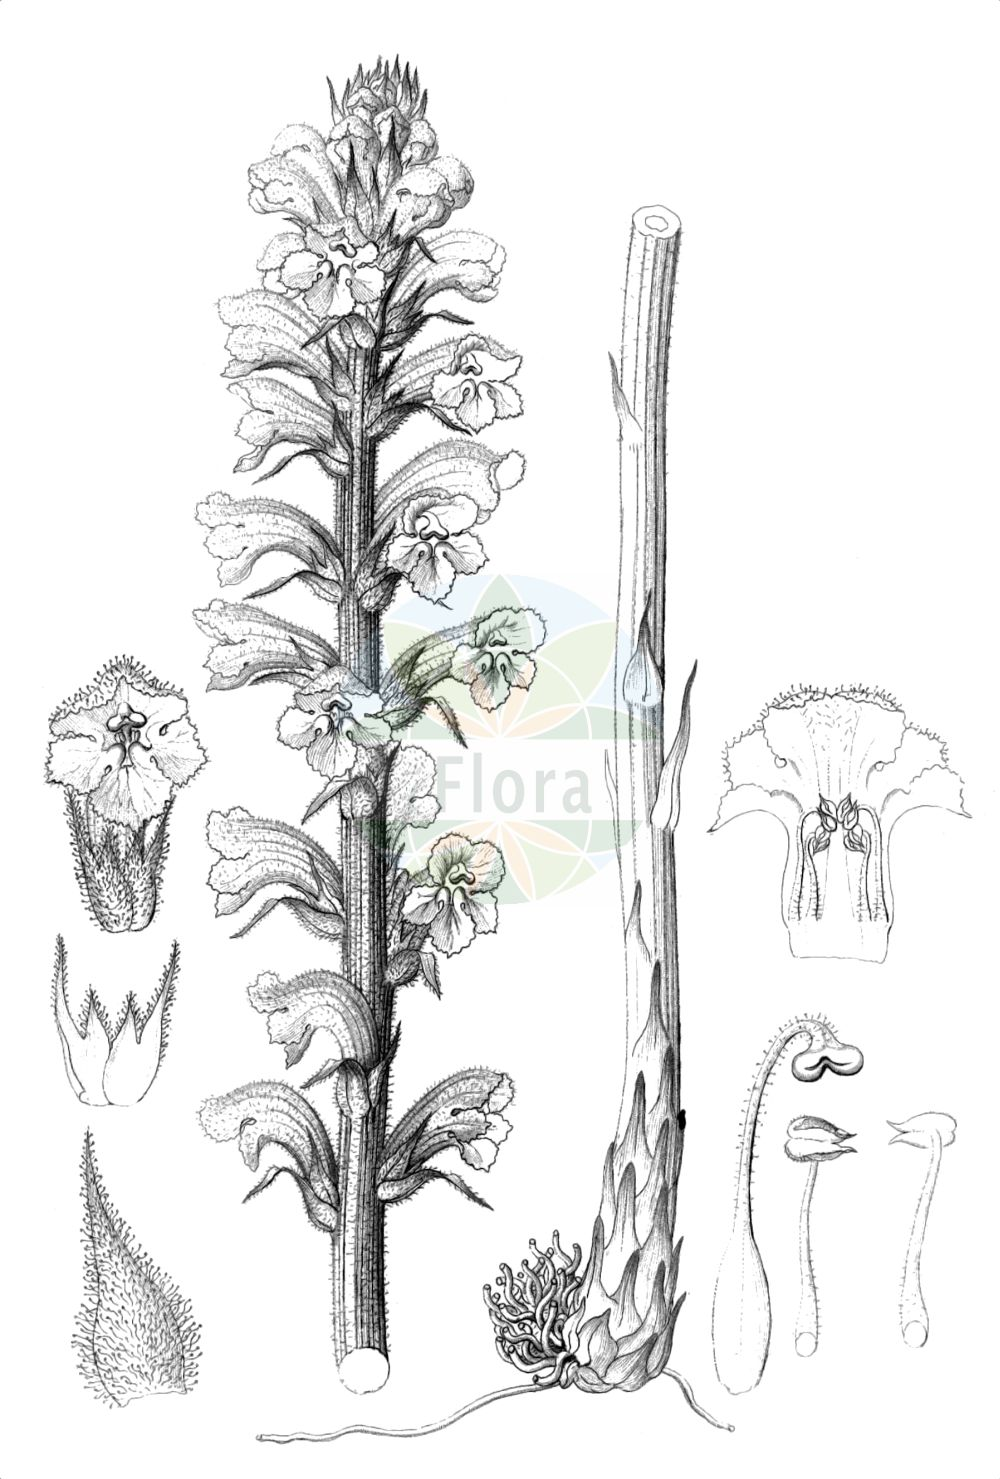 Historische Abbildung von Orobanche elatior (Grosse Sommerwurz - Knapweed Broomrape). Das Bild zeigt Blatt, Bluete, Frucht und Same. ---- Historical Drawing of Orobanche elatior (Grosse Sommerwurz - Knapweed Broomrape).The image is showing leaf, flower, fruit and seed.(Orobanche elatior,Grosse Sommerwurz,Knapweed Broomrape,Orobanche echinopis,Orobanche elatior,Orobanche icterica,Orobanche loscosii,Orobanche ritro,Grosse Sommerwurz,Knapweed Broomrape,Tall Broomrape,Orobanche,Sommerwurz,Broomrape,Orobanchaceae,Sommerwurzgewaechse,Broomrape family,Blatt,Bluete,Frucht,Same,leaf,flower,fruit,seed,Reichenbach (1823-1832))